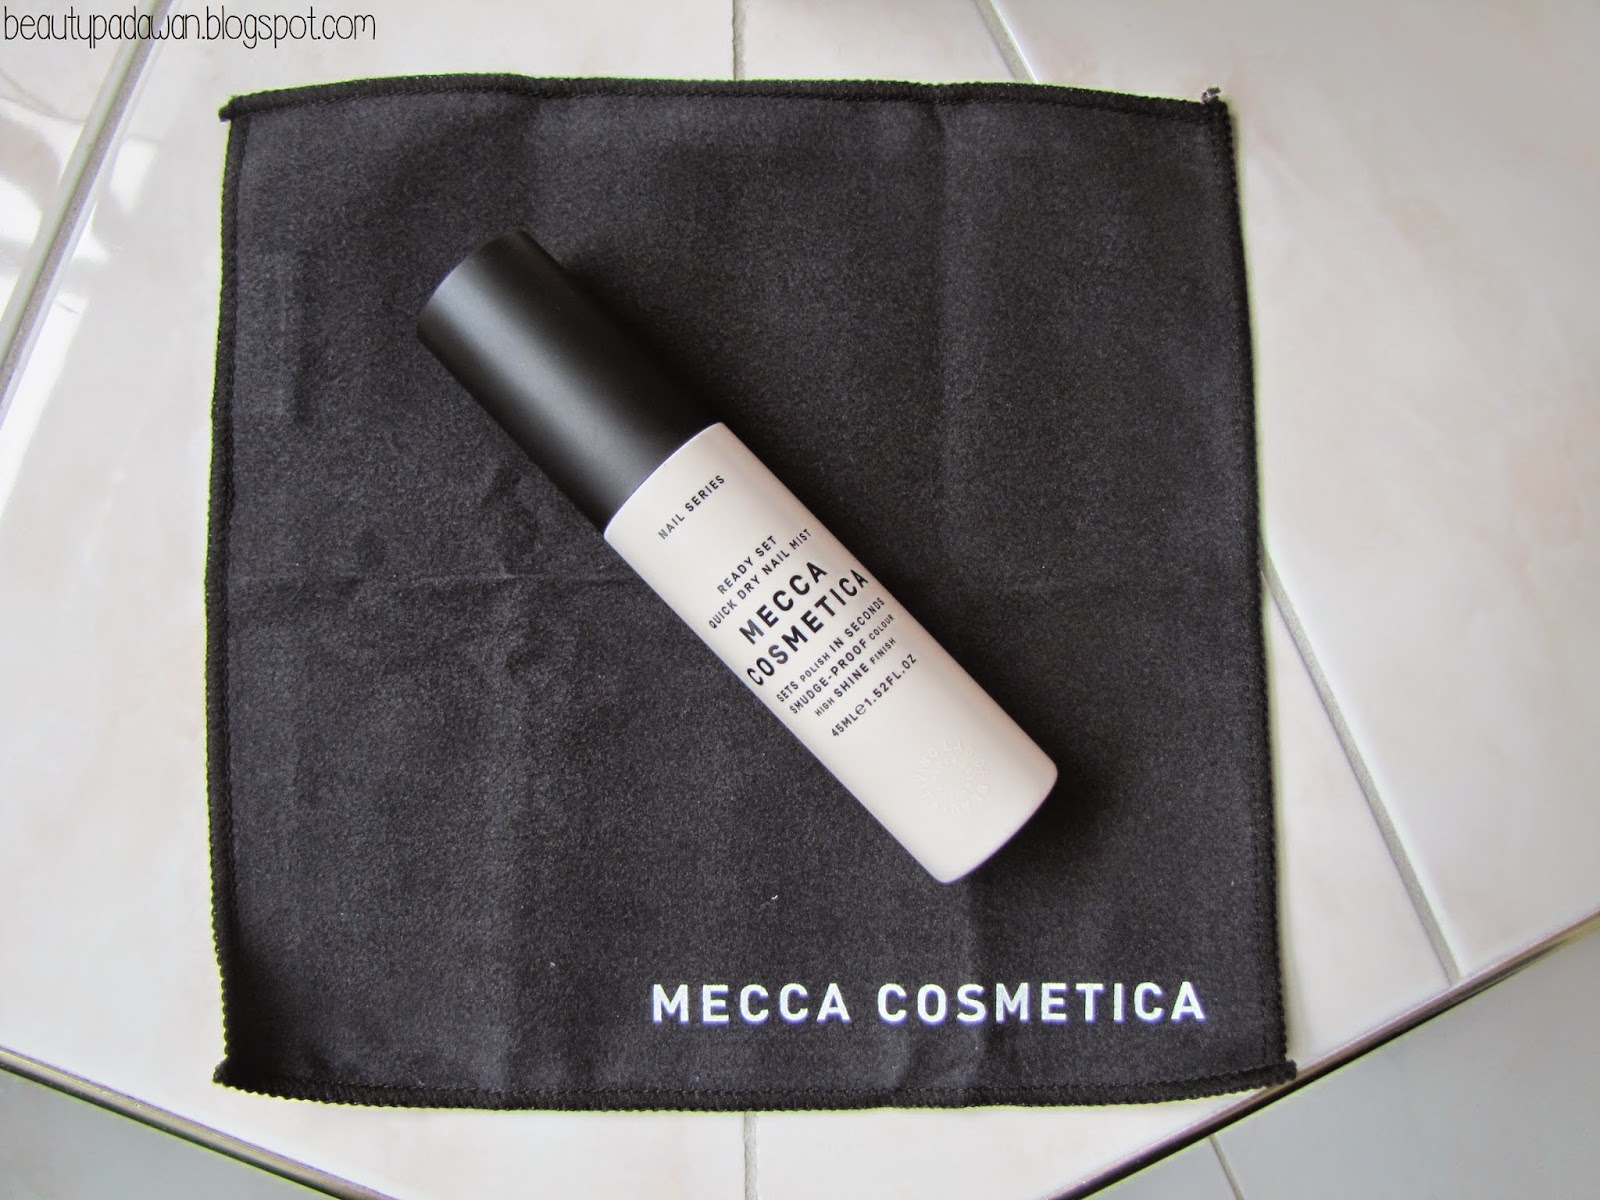 Mecca Cosmetica Ready Set Quick Dry Nail Mist